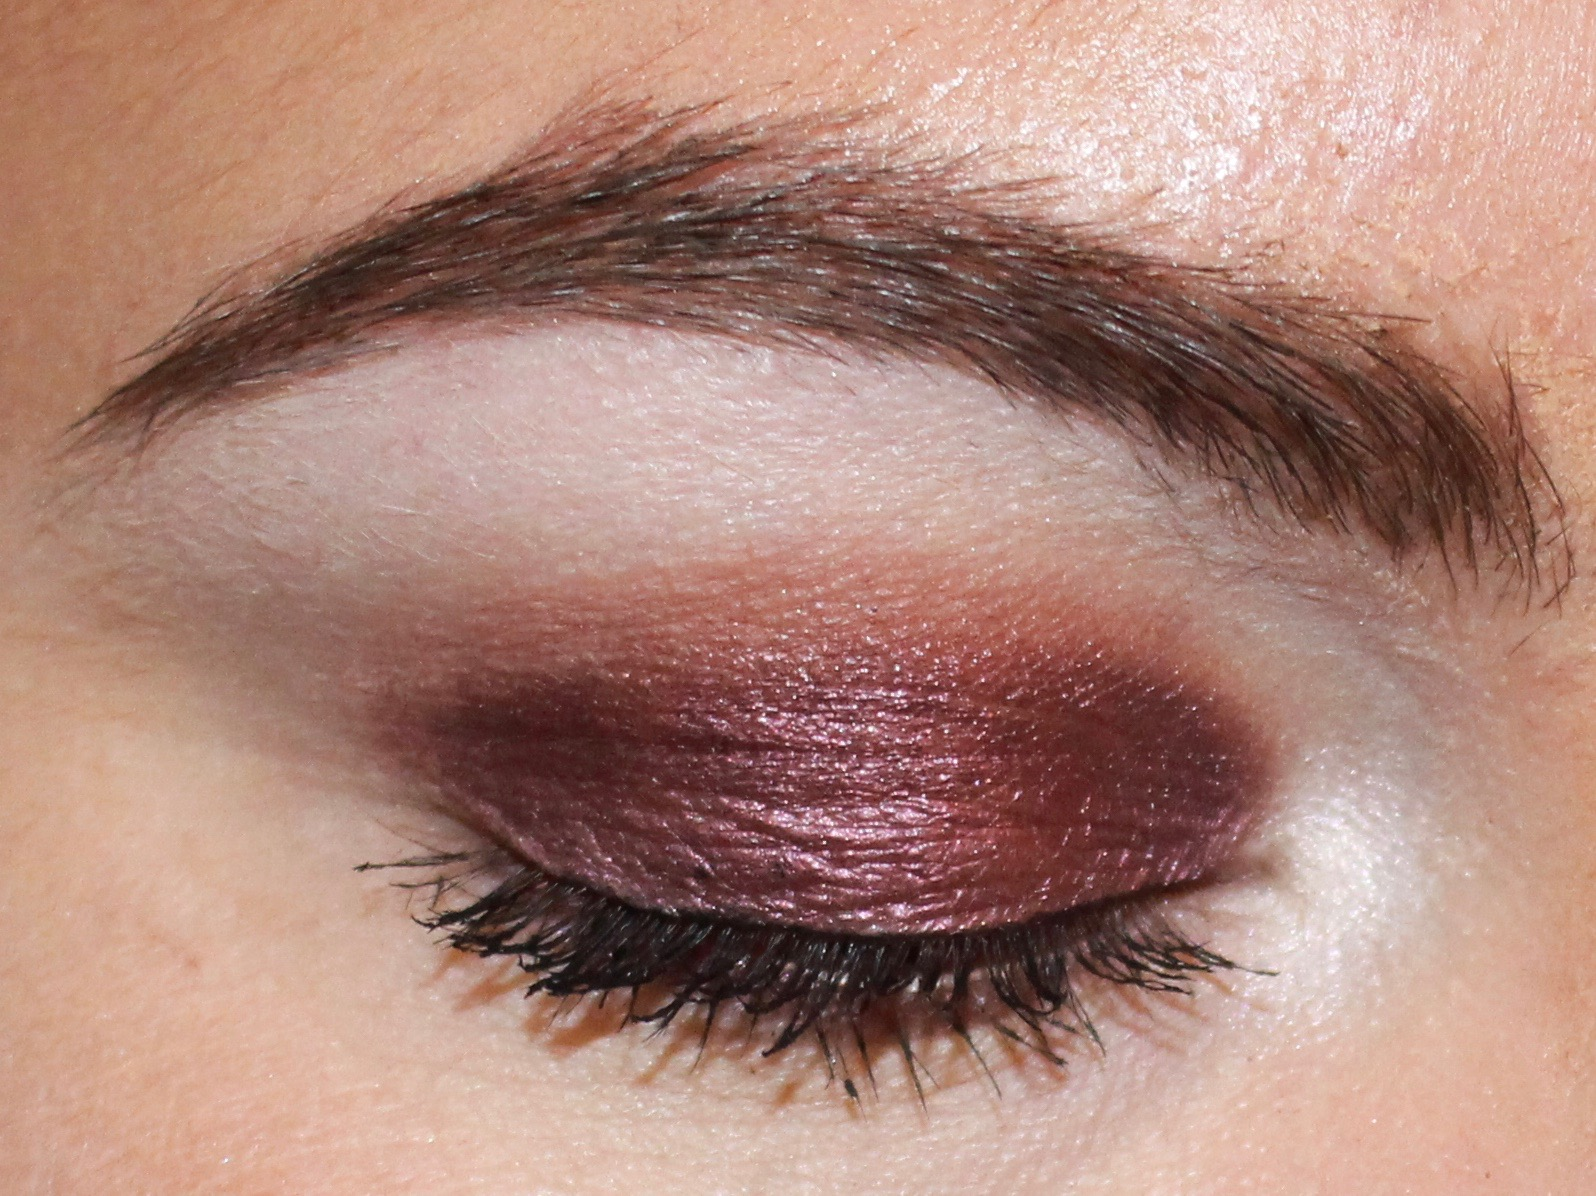 ABH Rosette On The Lid Dusty Rose Blended Into Crease And Lower Lash Line